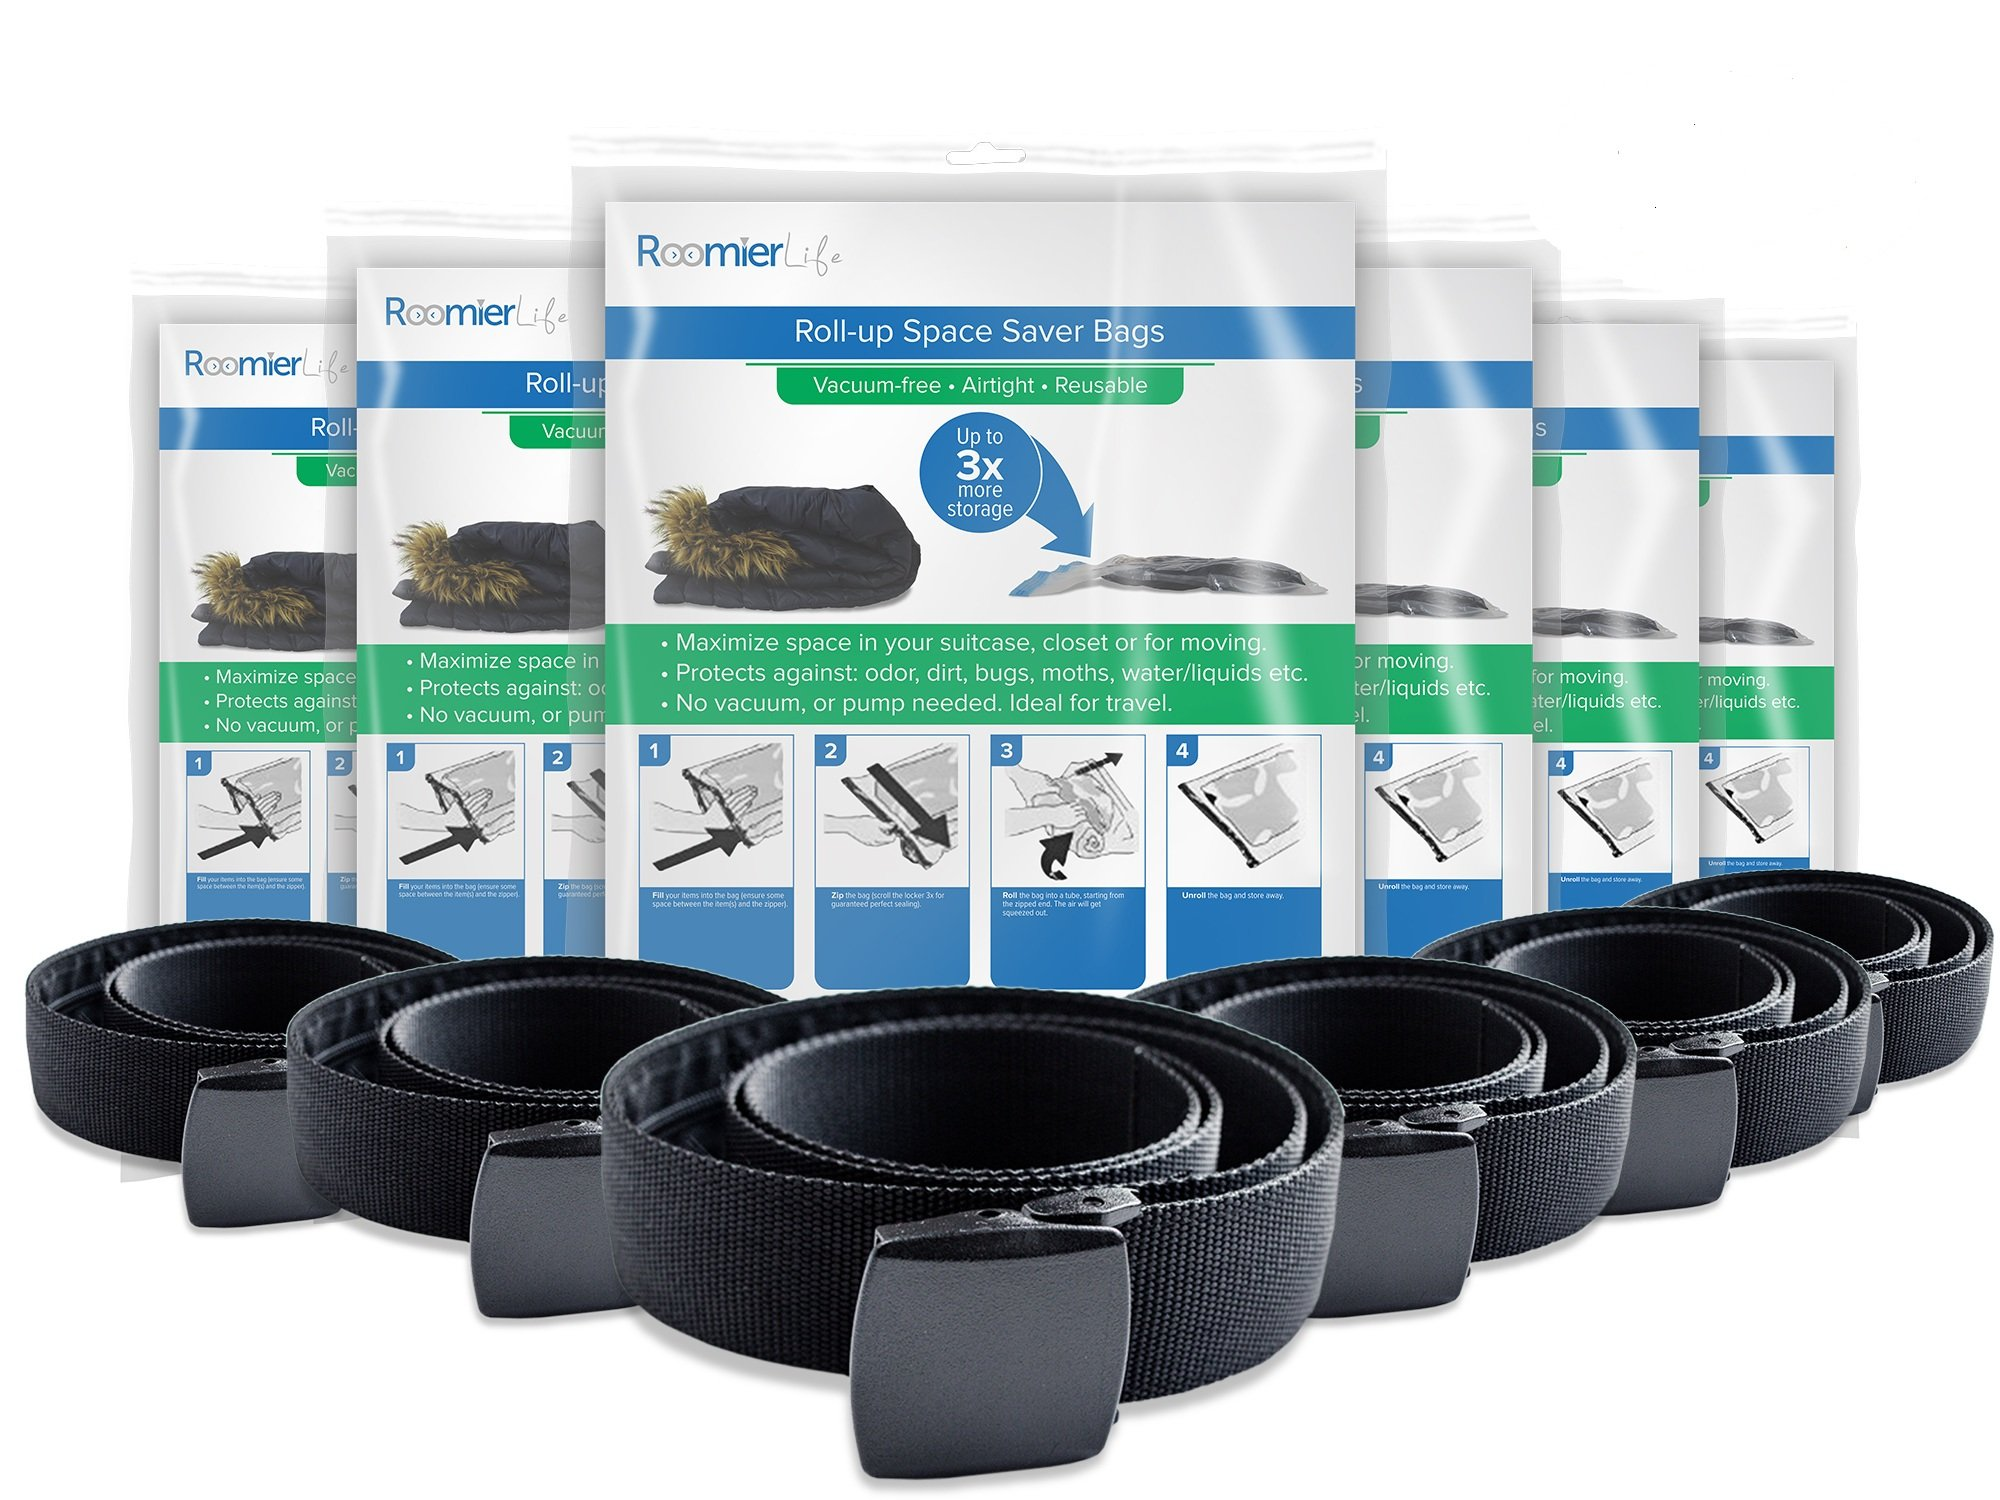 Travel Security Belt & Travel Space Saver Bags 6 Pack Bundle. Includes 6 belts & 6 packs of compression bags (48 bags total) by RoomierLife by VOLAR Bags